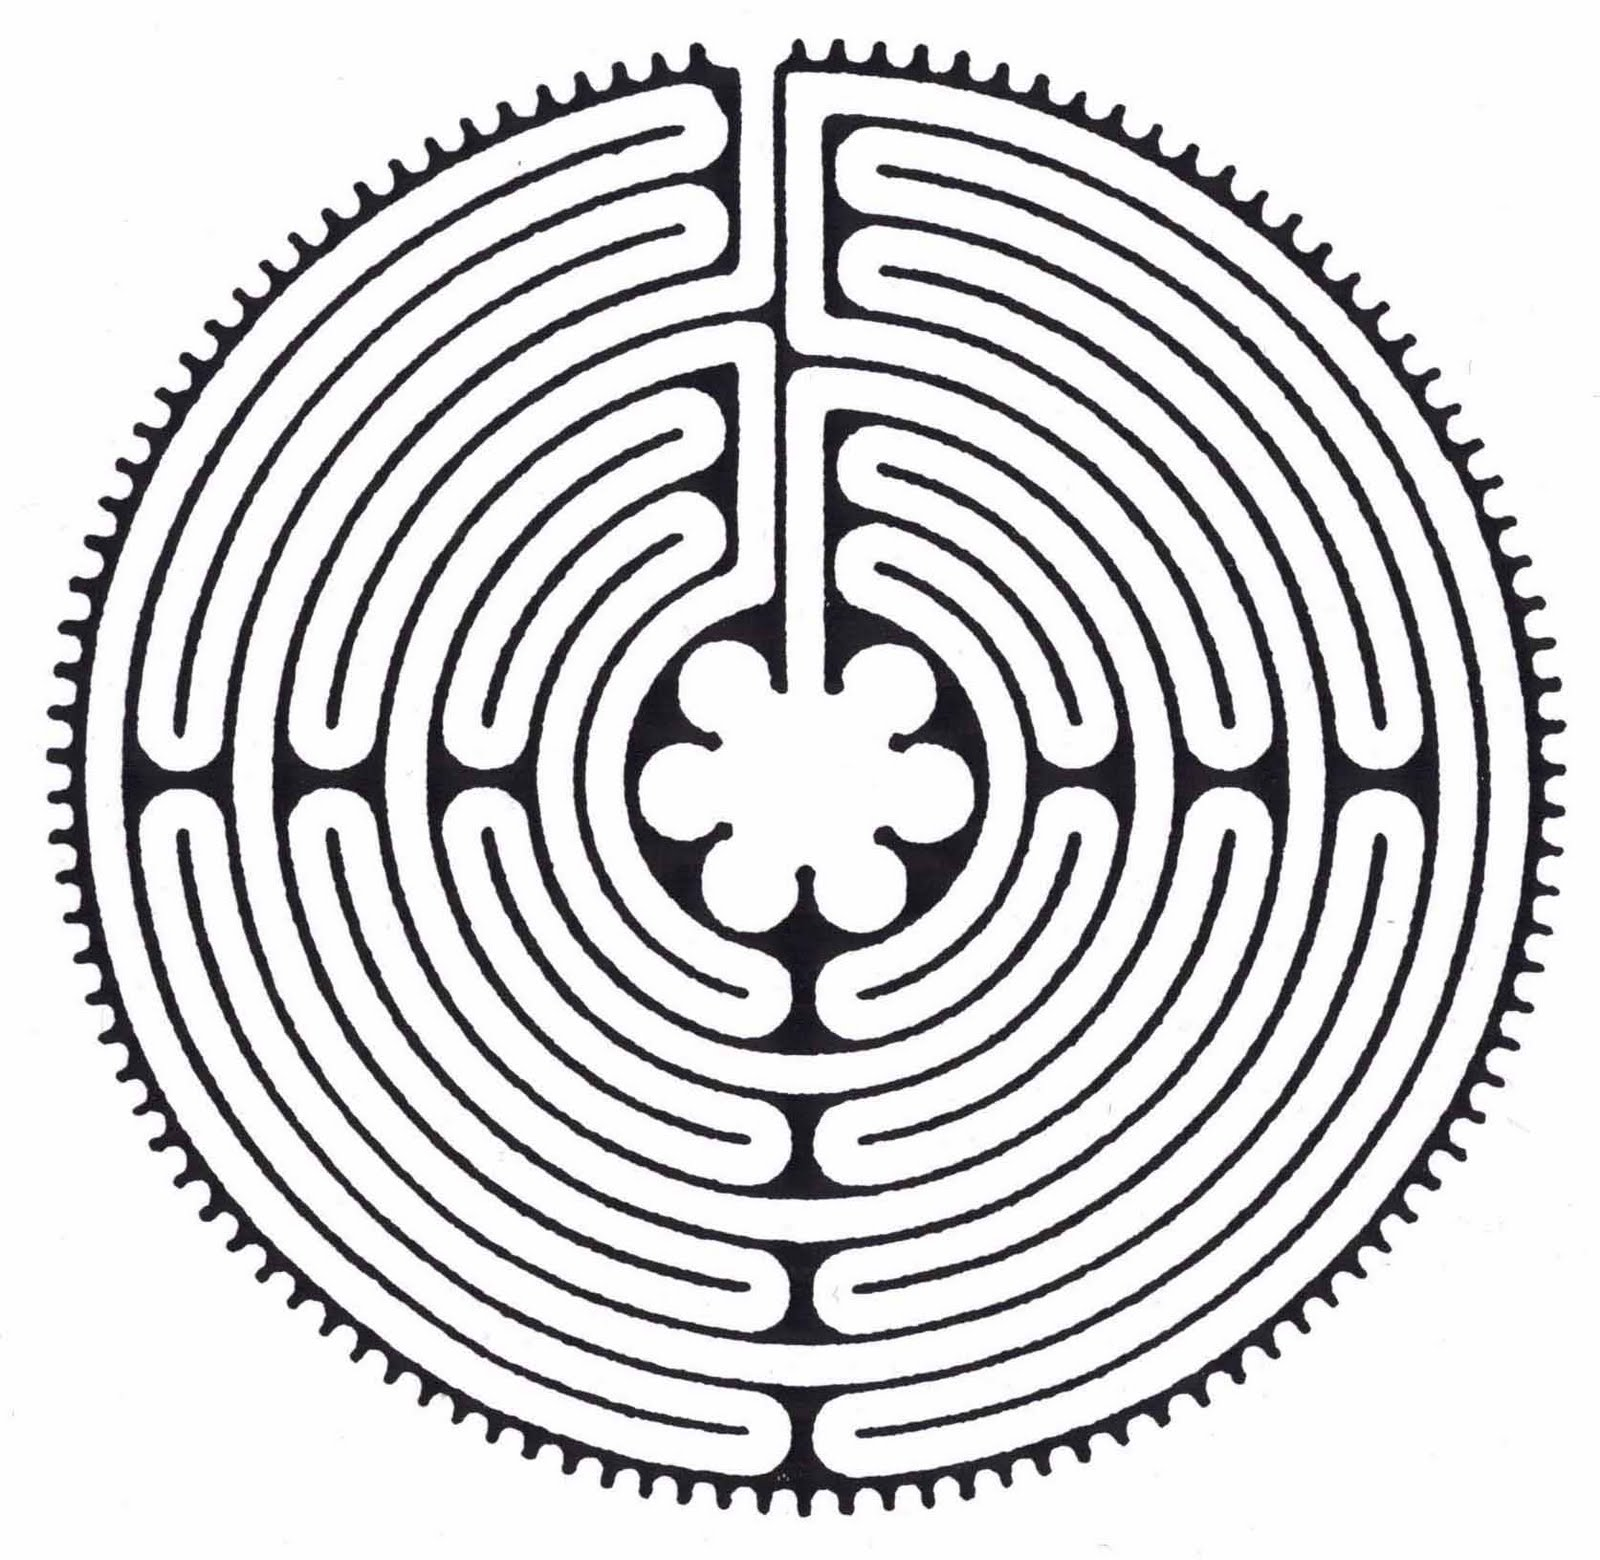 The Labyrinth Is An Ancient Mystical Tool That Can Help Bring About Personal Transformation And A Shift In Consciousness It Is Meant To Awaken Us To The